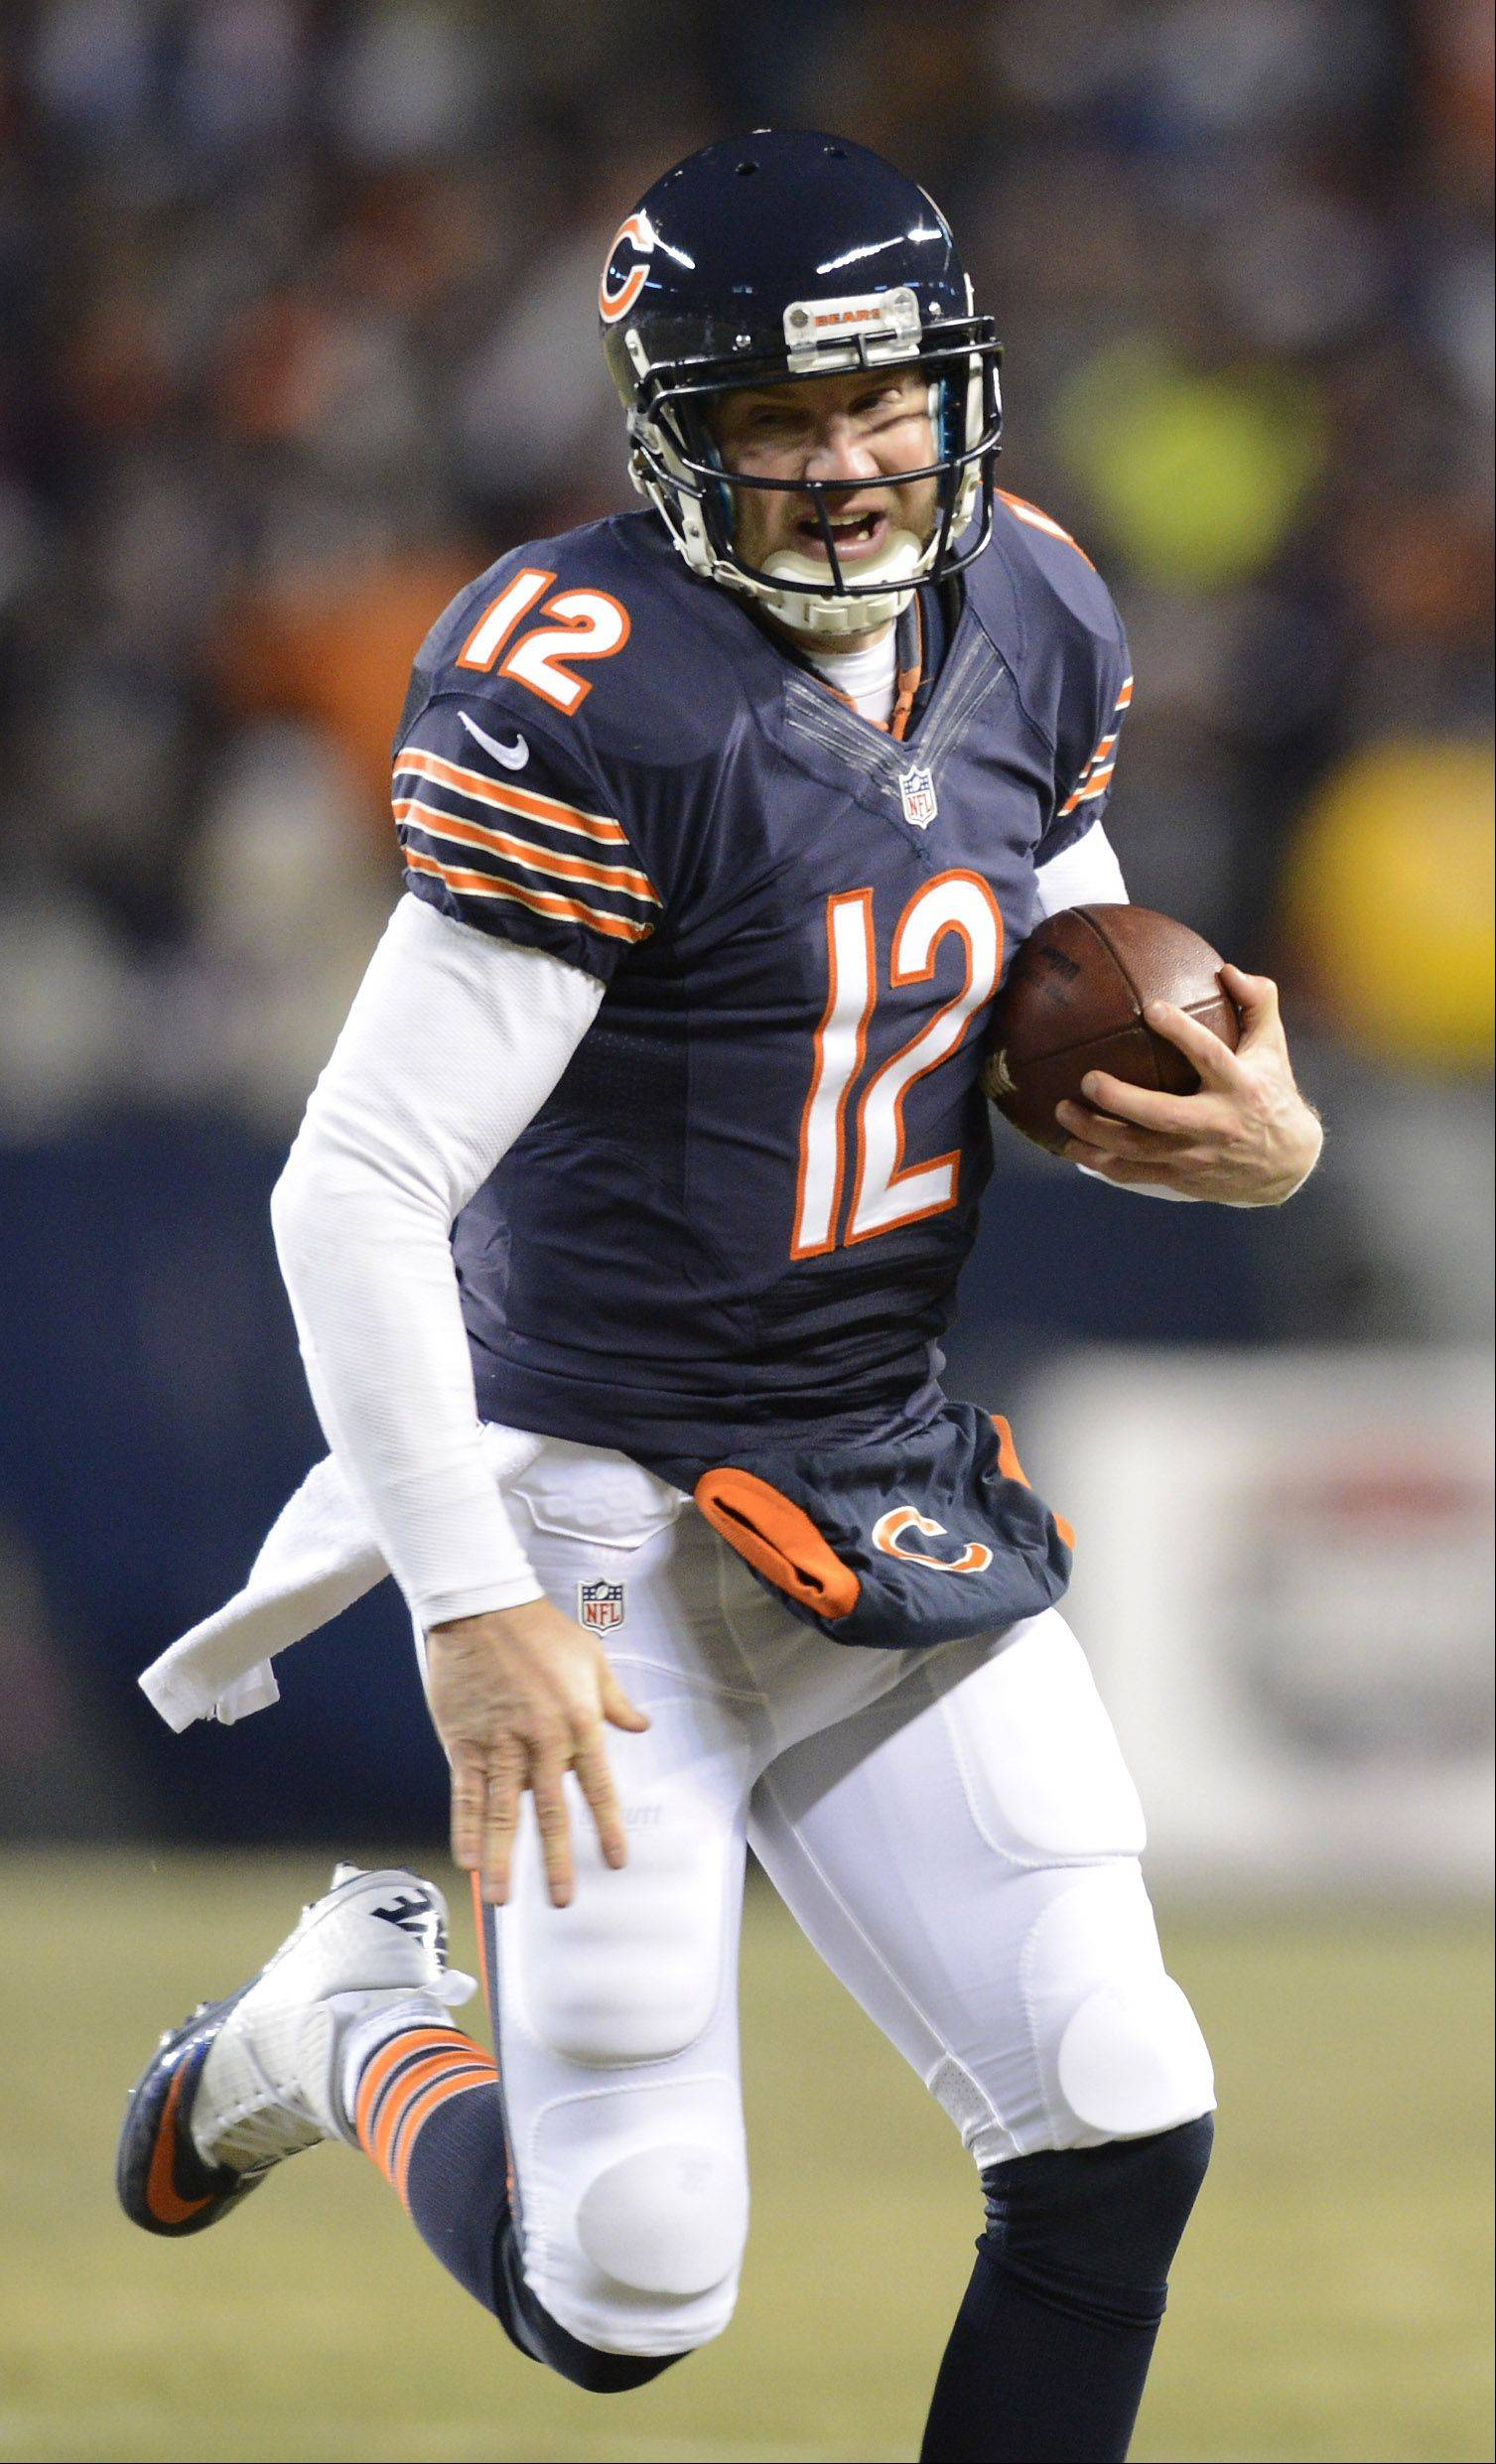 Chicago Bears quarterback Josh McCown carries the ball for a first down.